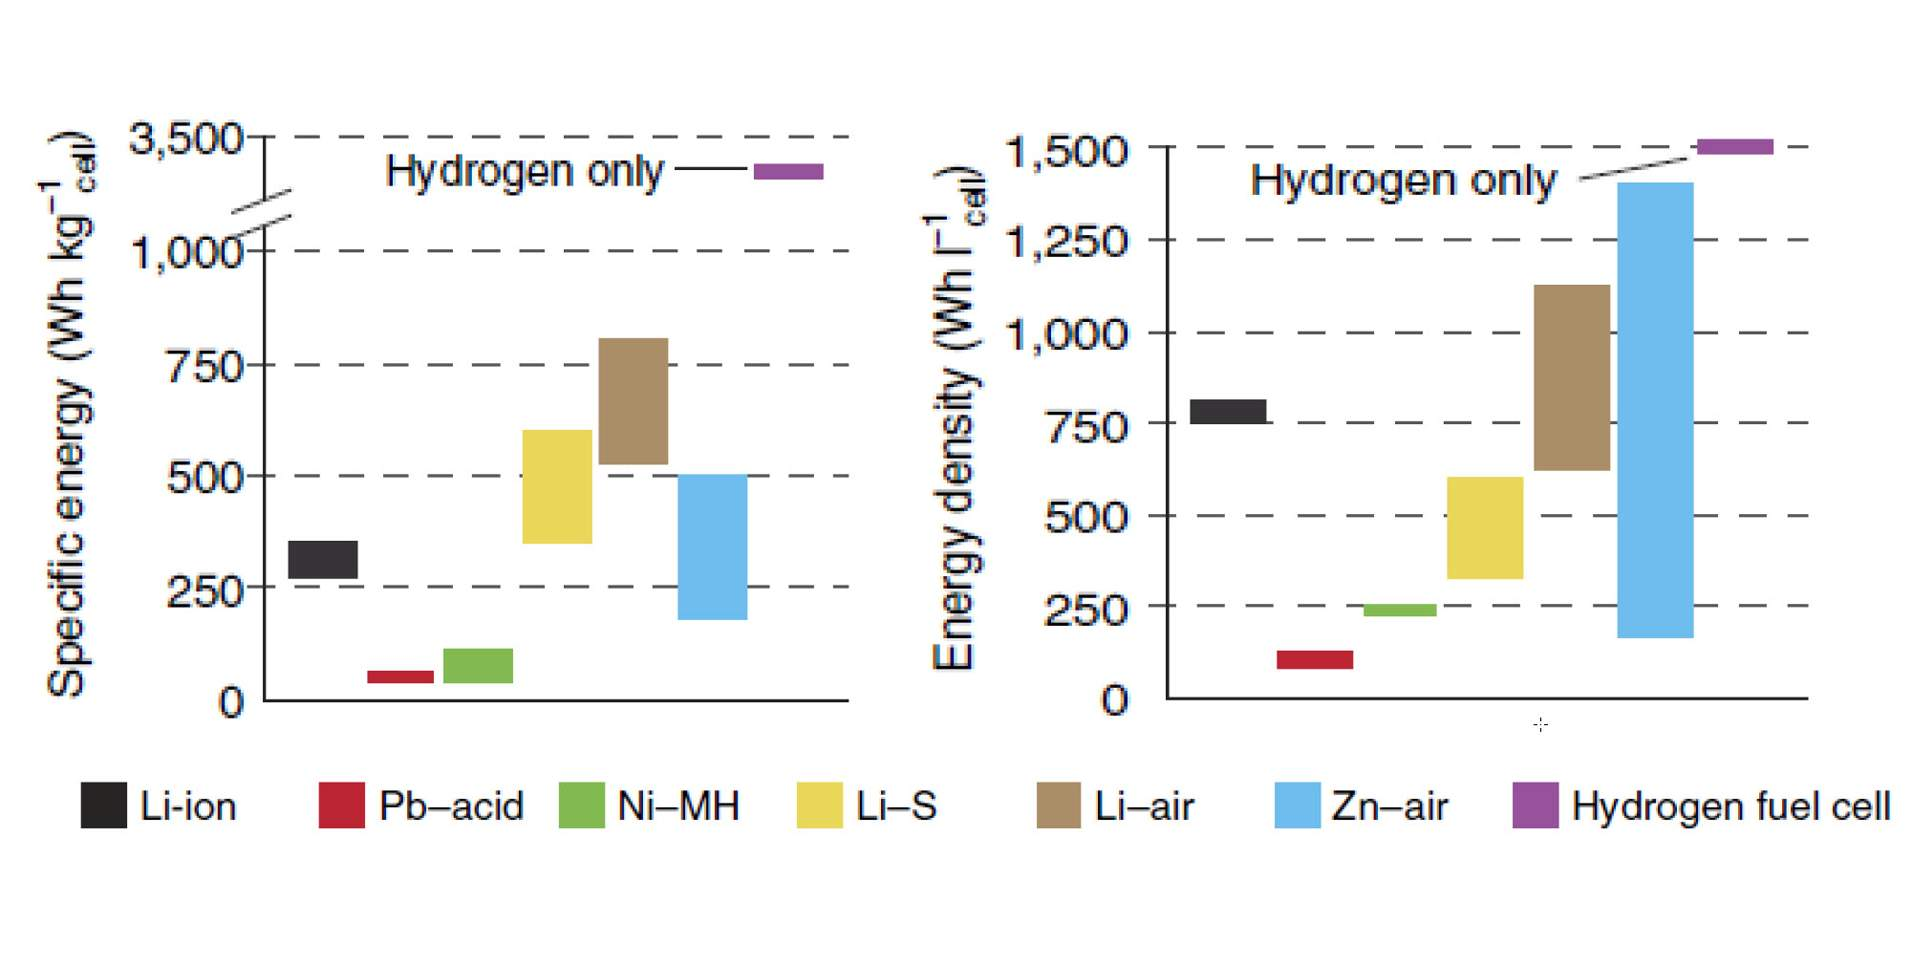 Characteristics of rechargeable batteries and hydrogen fuel cells